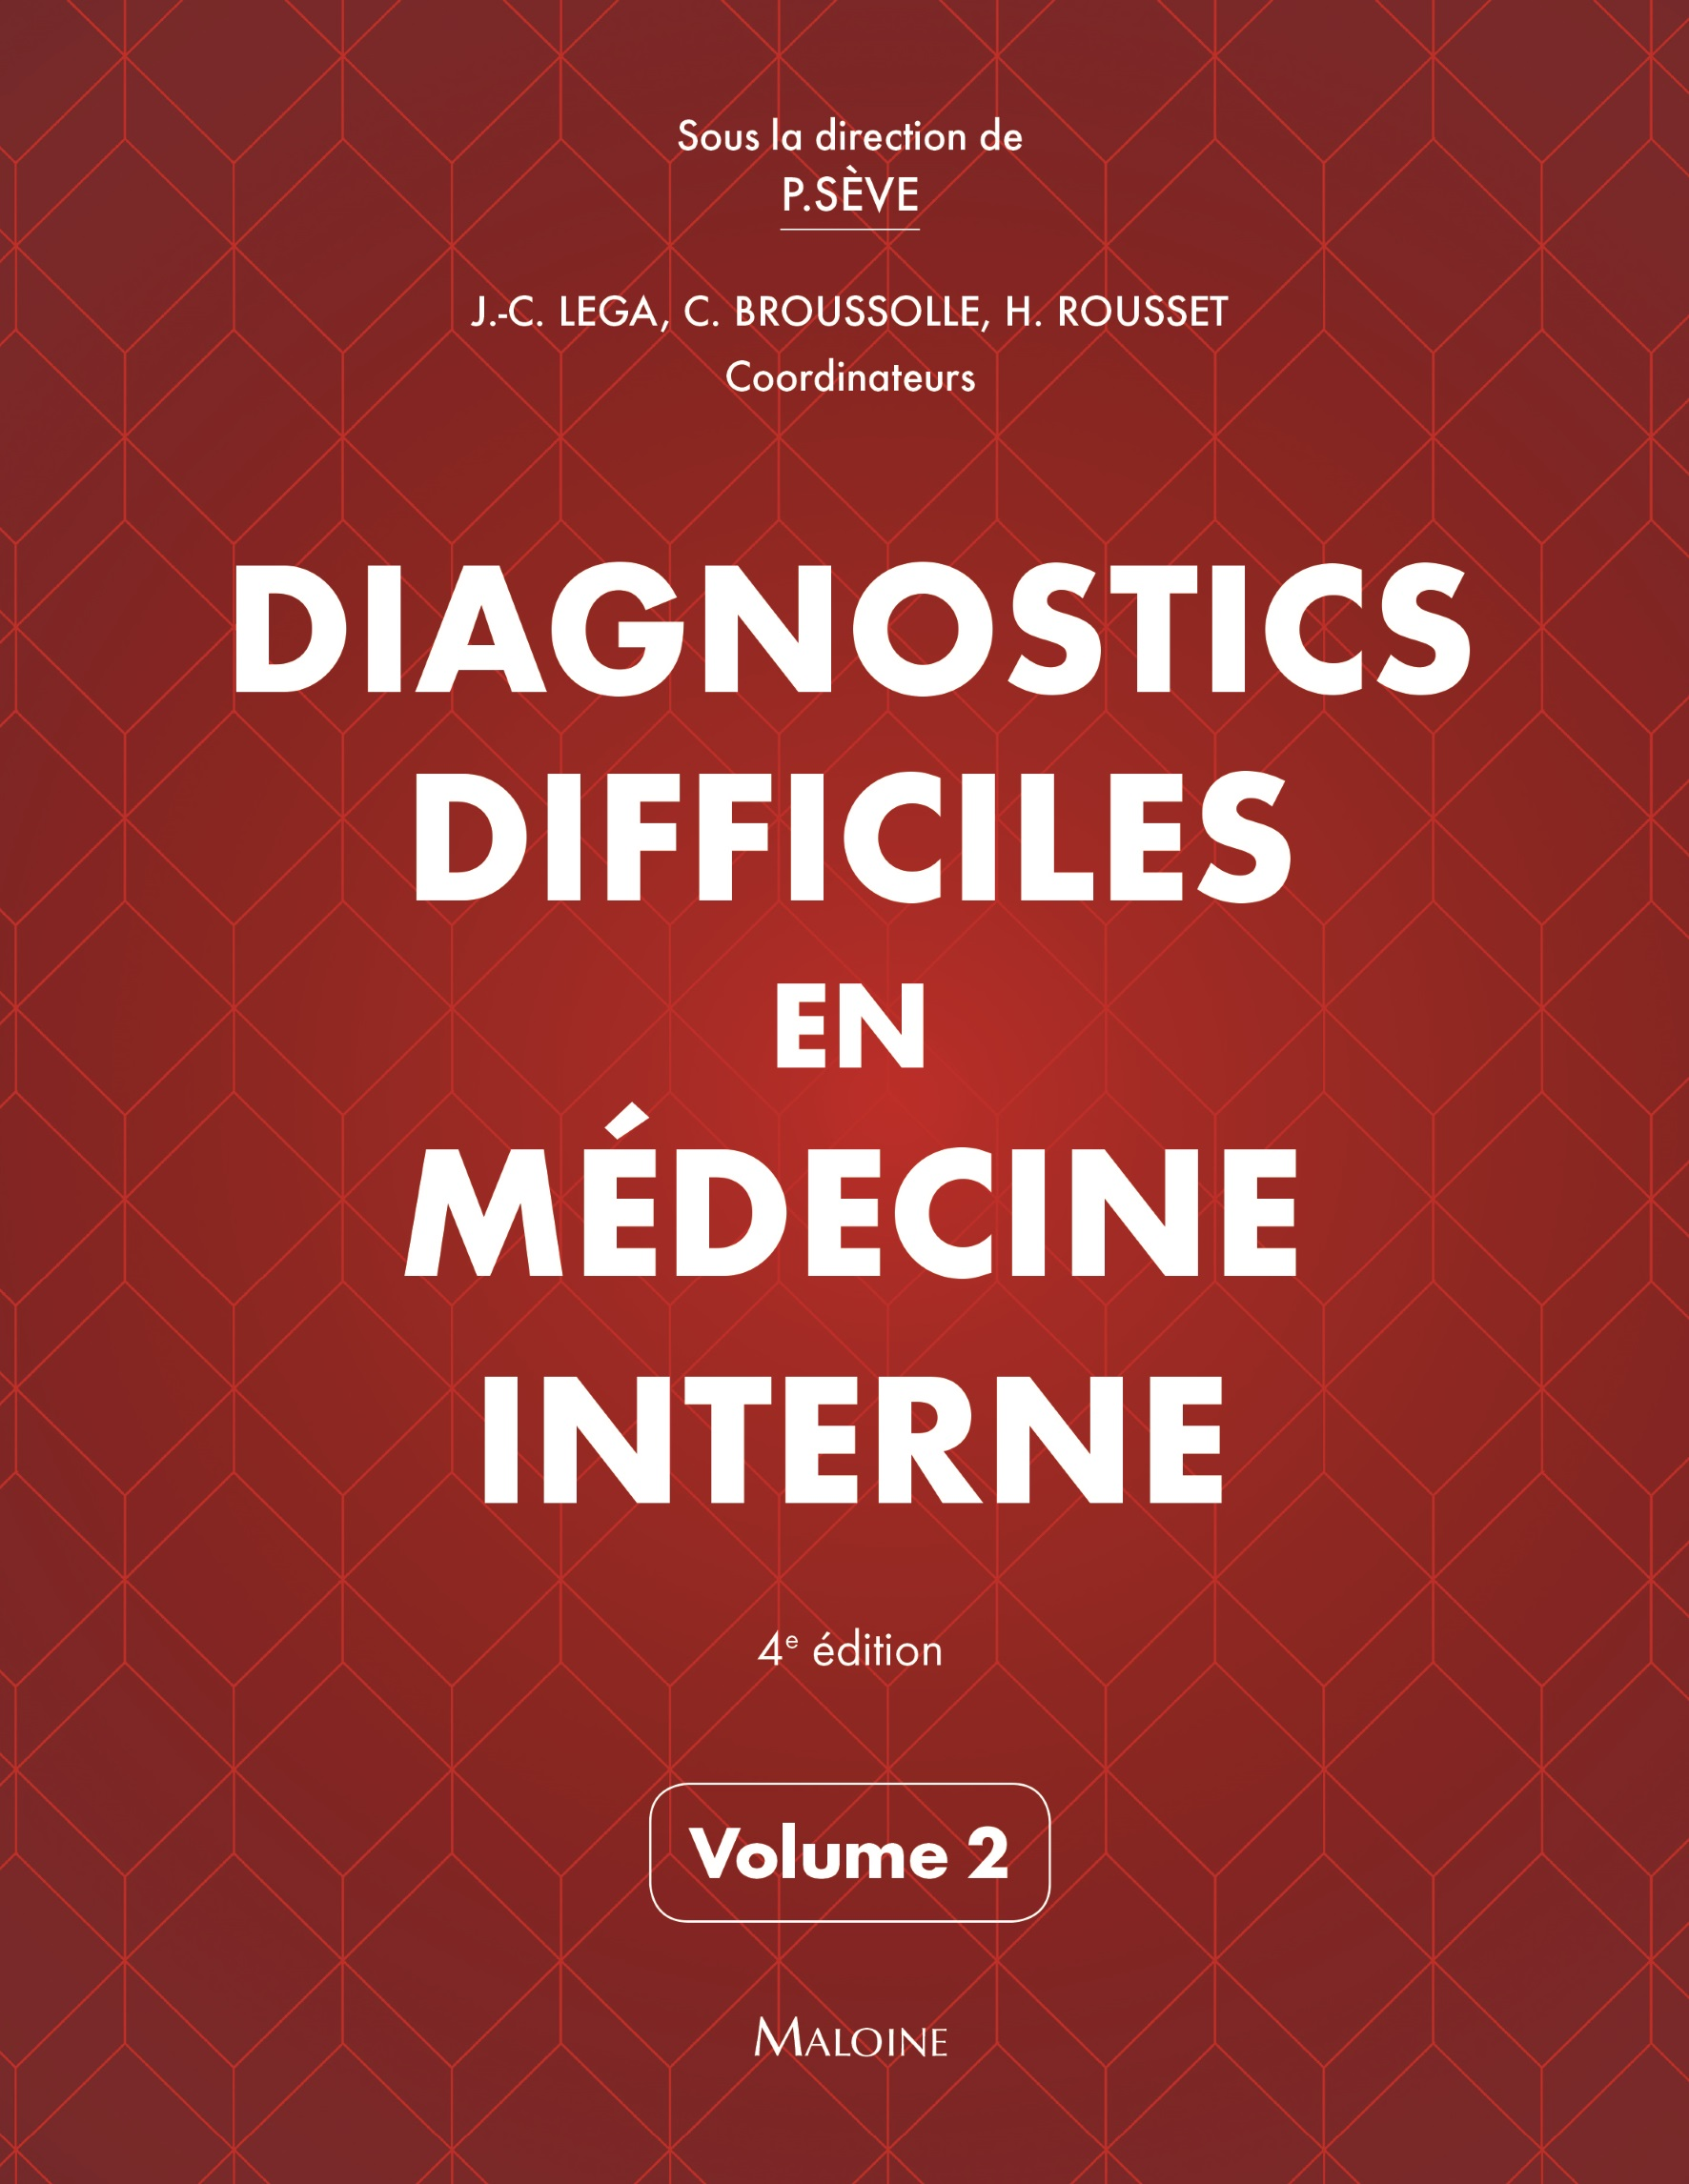 Diagnostics difficiles en médecine interne Vol. 2 4e éd.